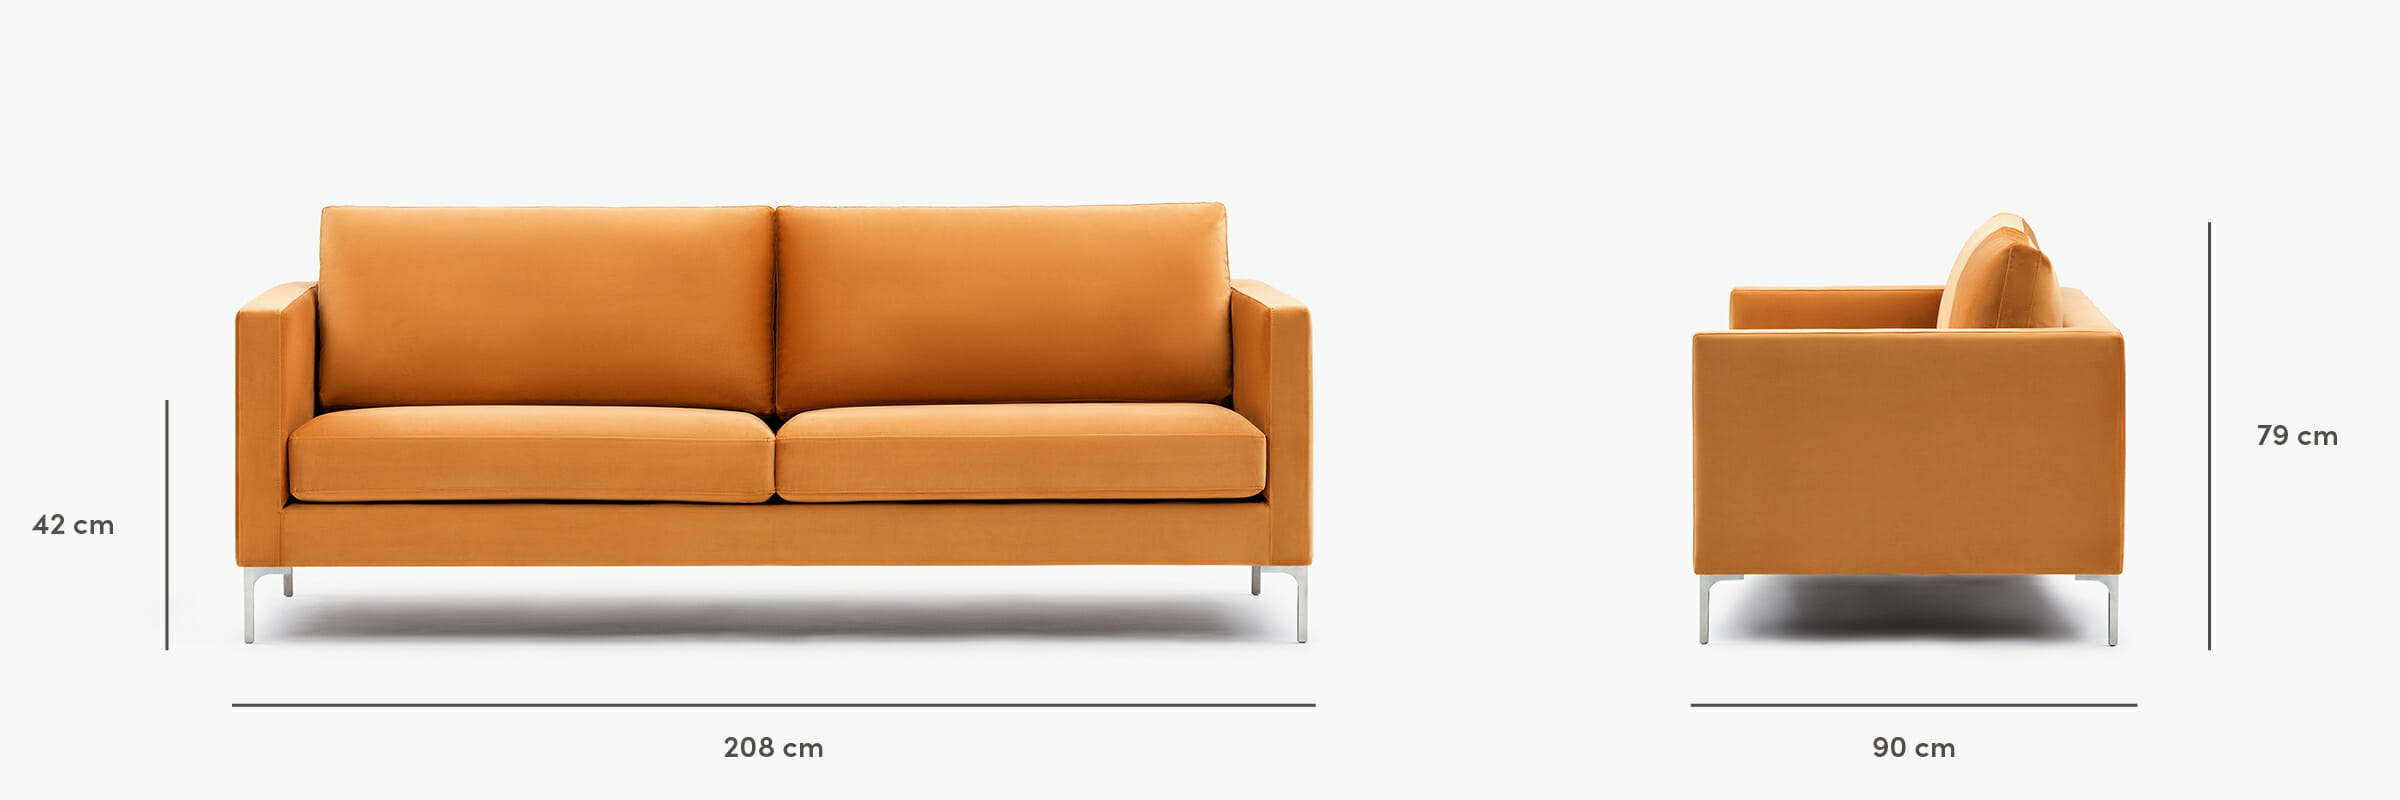 The monaco sofa dimensions